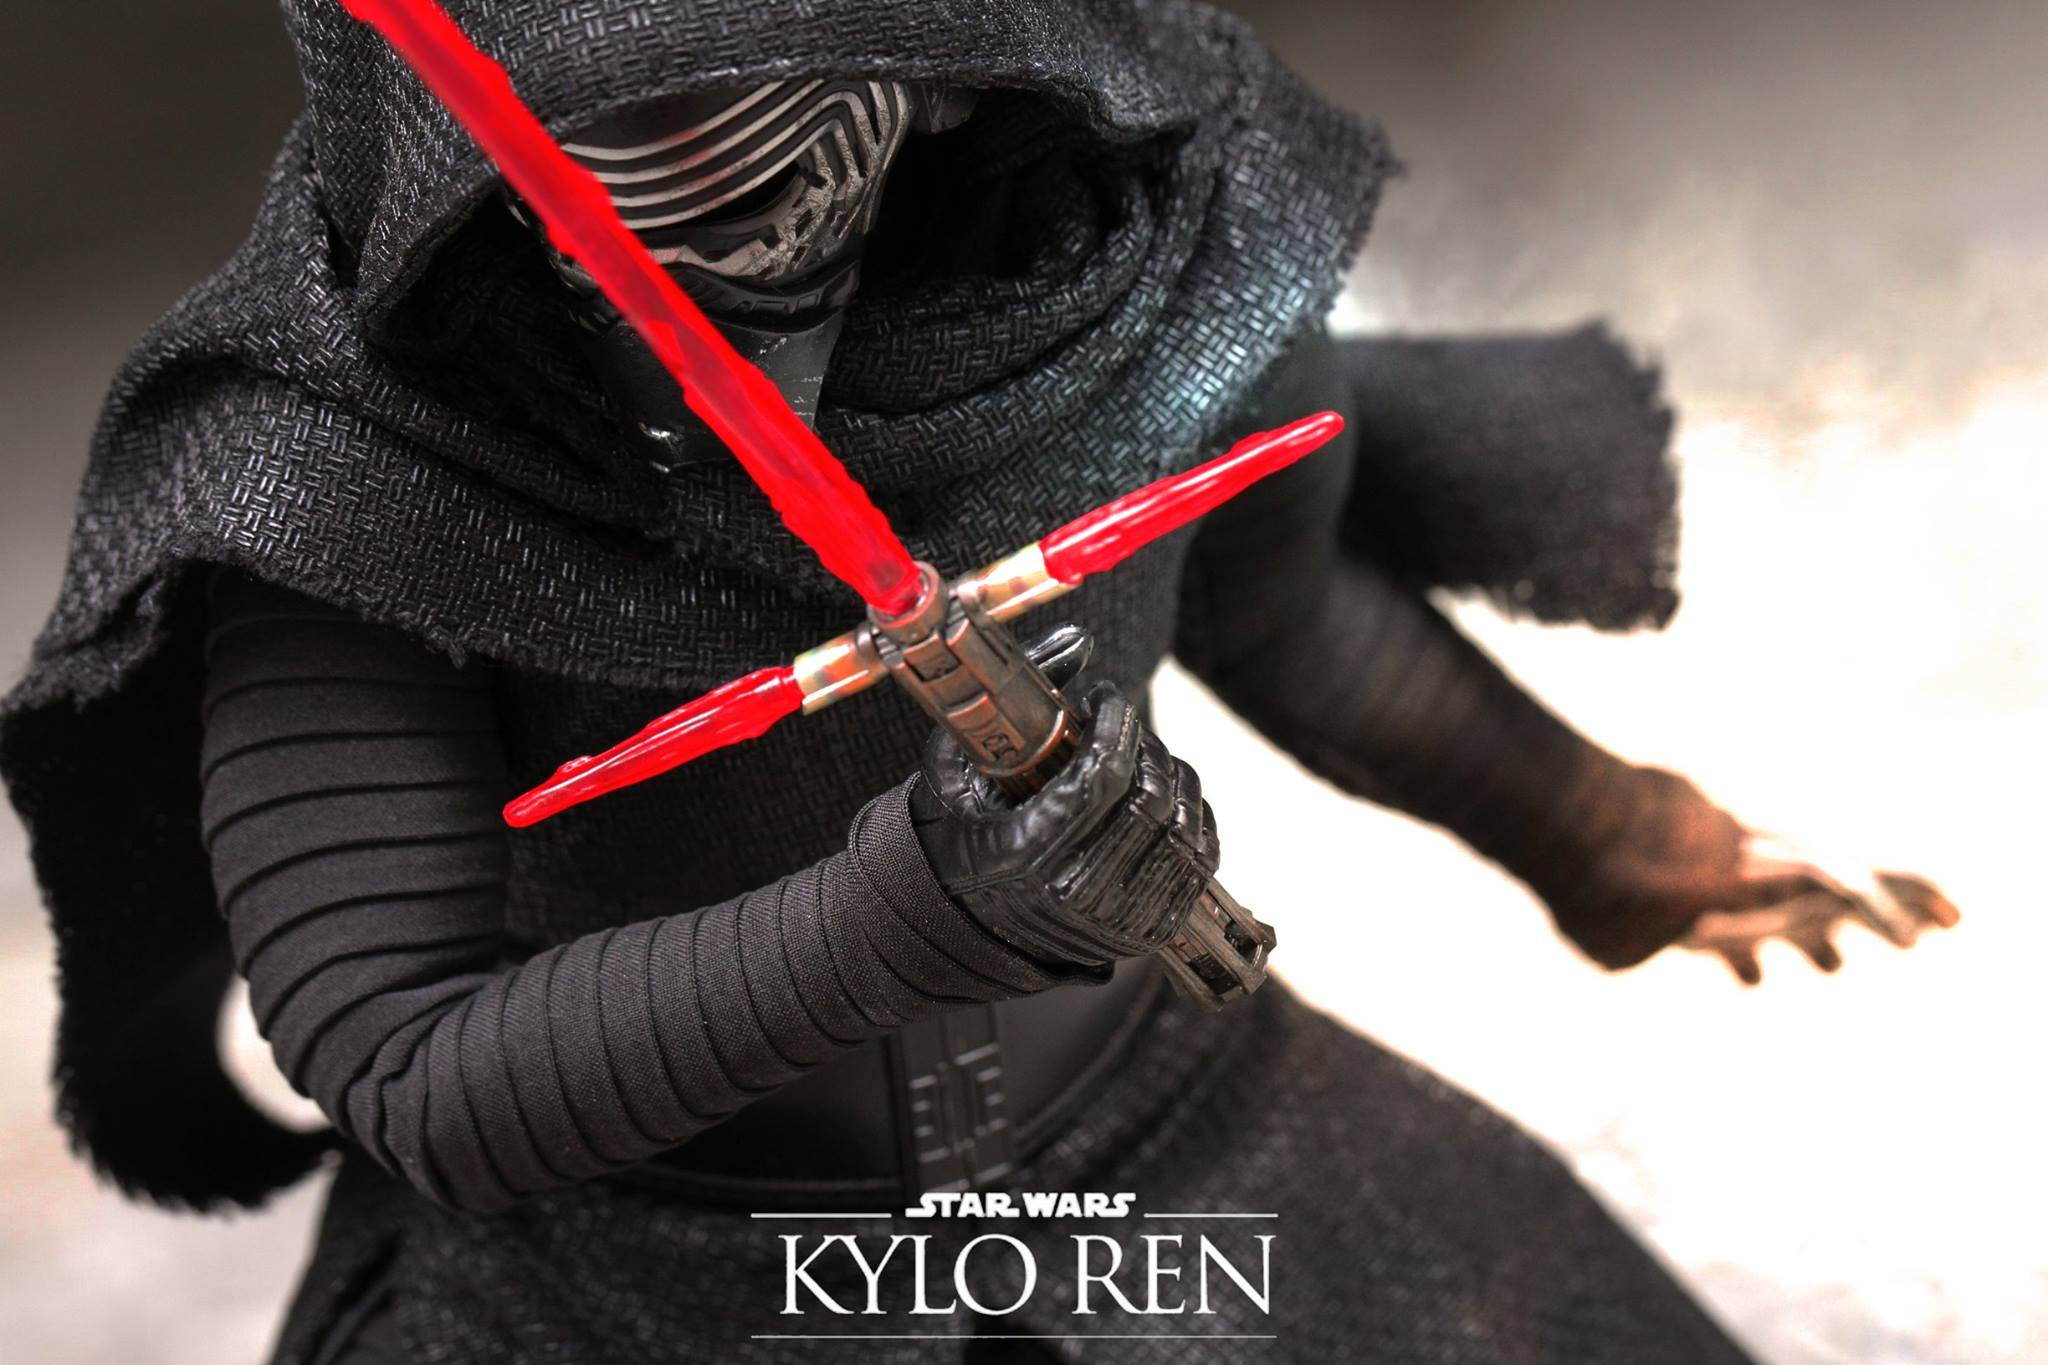 Hot Toys Fulfills Their Destiny With New Photos Of Kylo Ren 1 6th